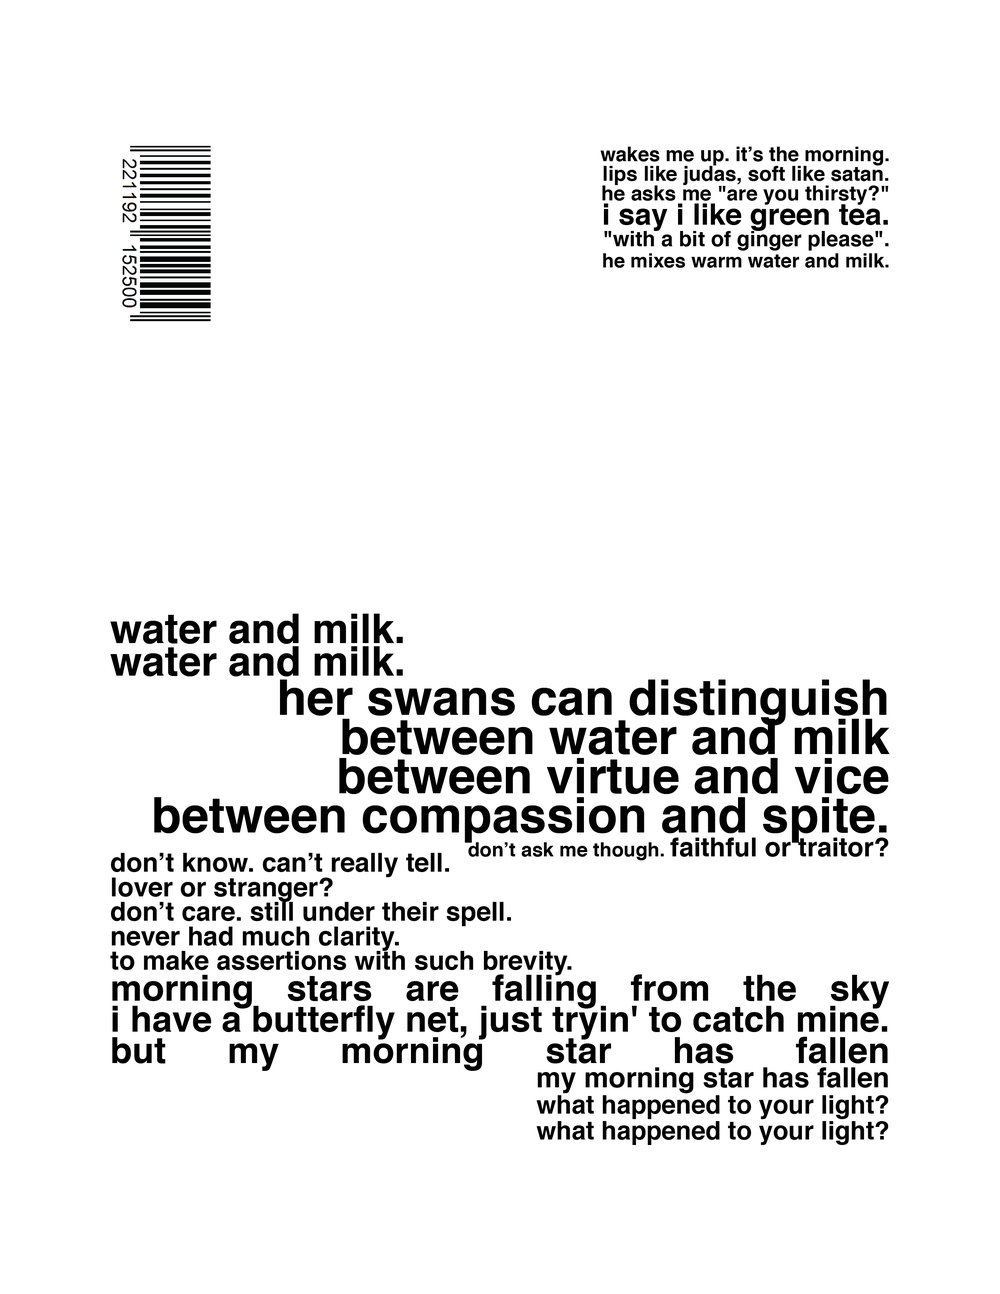 waterandmilk-02.jpg